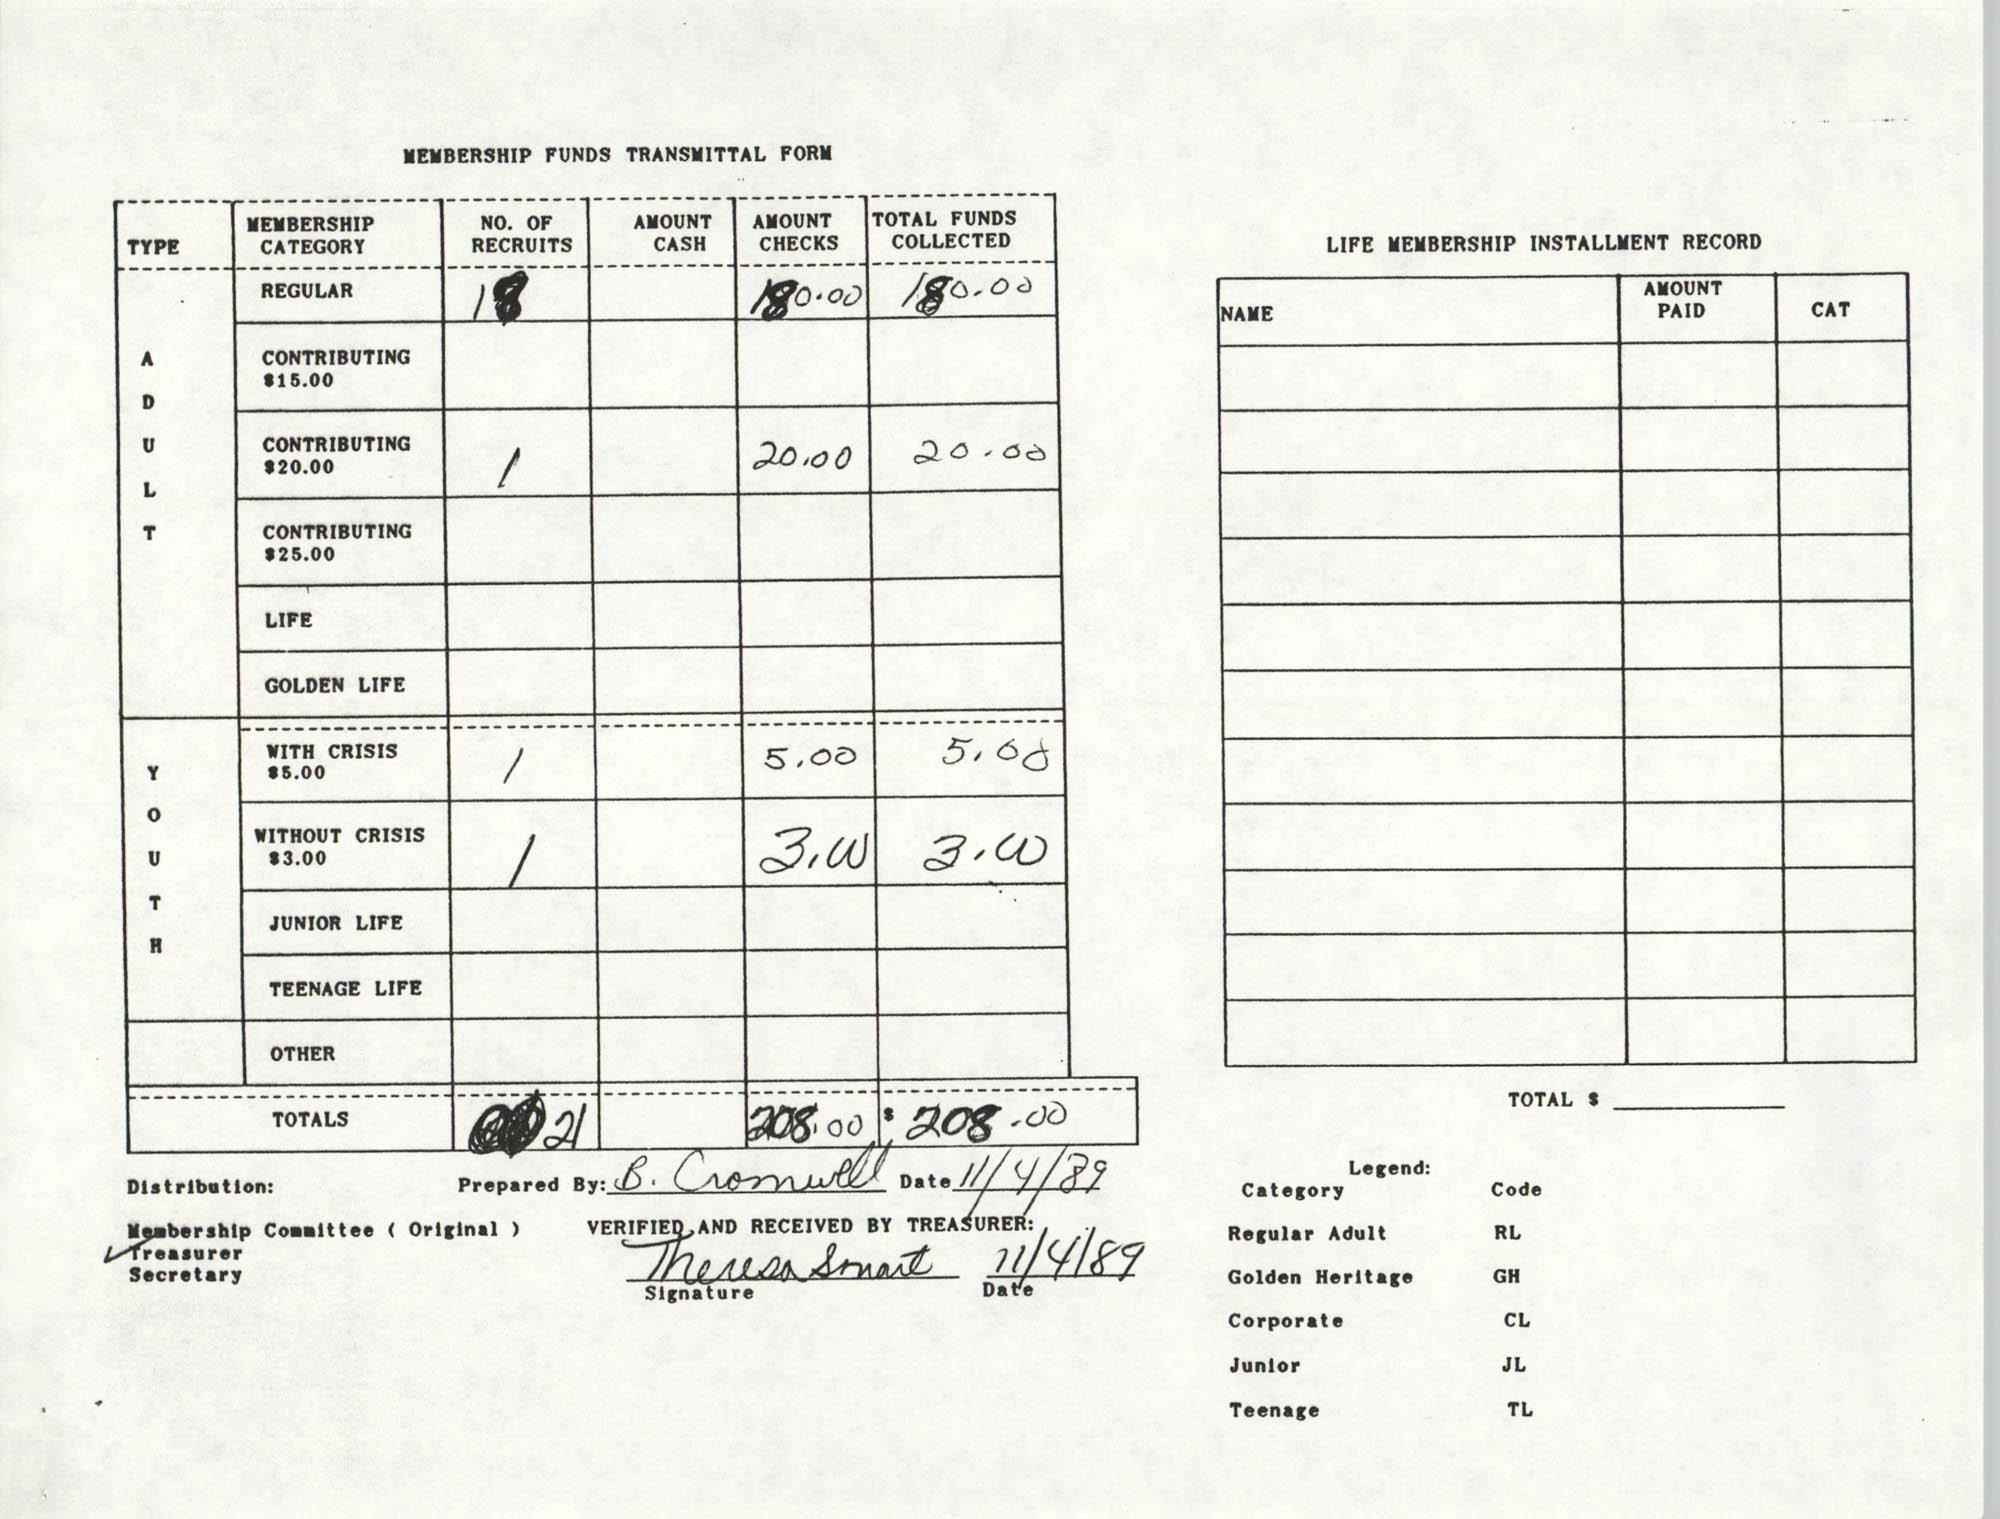 Charleston Branch of the NAACP Funds Transmittal Forms, November 1989, Page 1